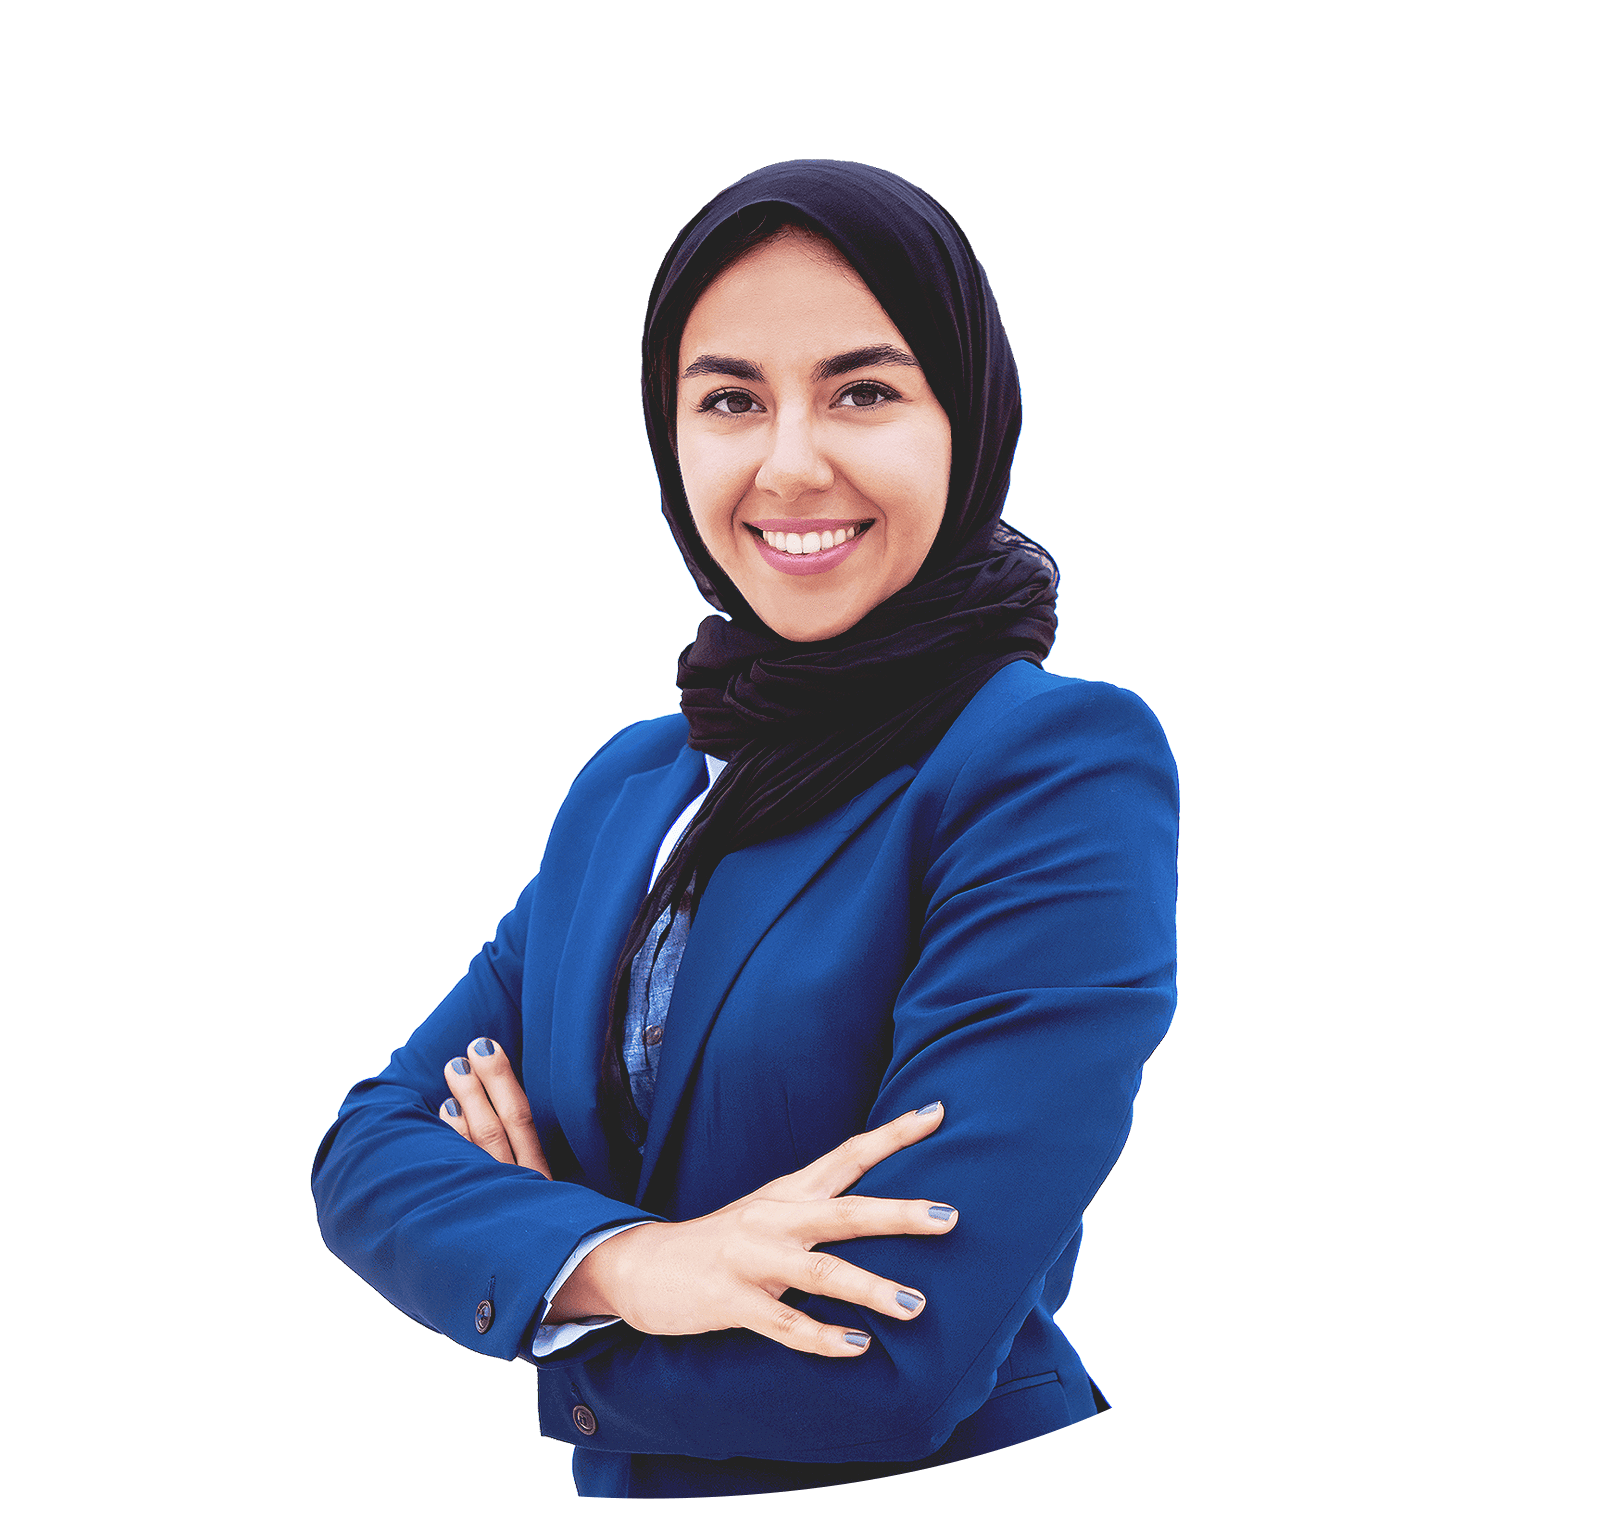 Woman with a broad smile wearing a hijab and blue suit jacket. Her arms are crossed.